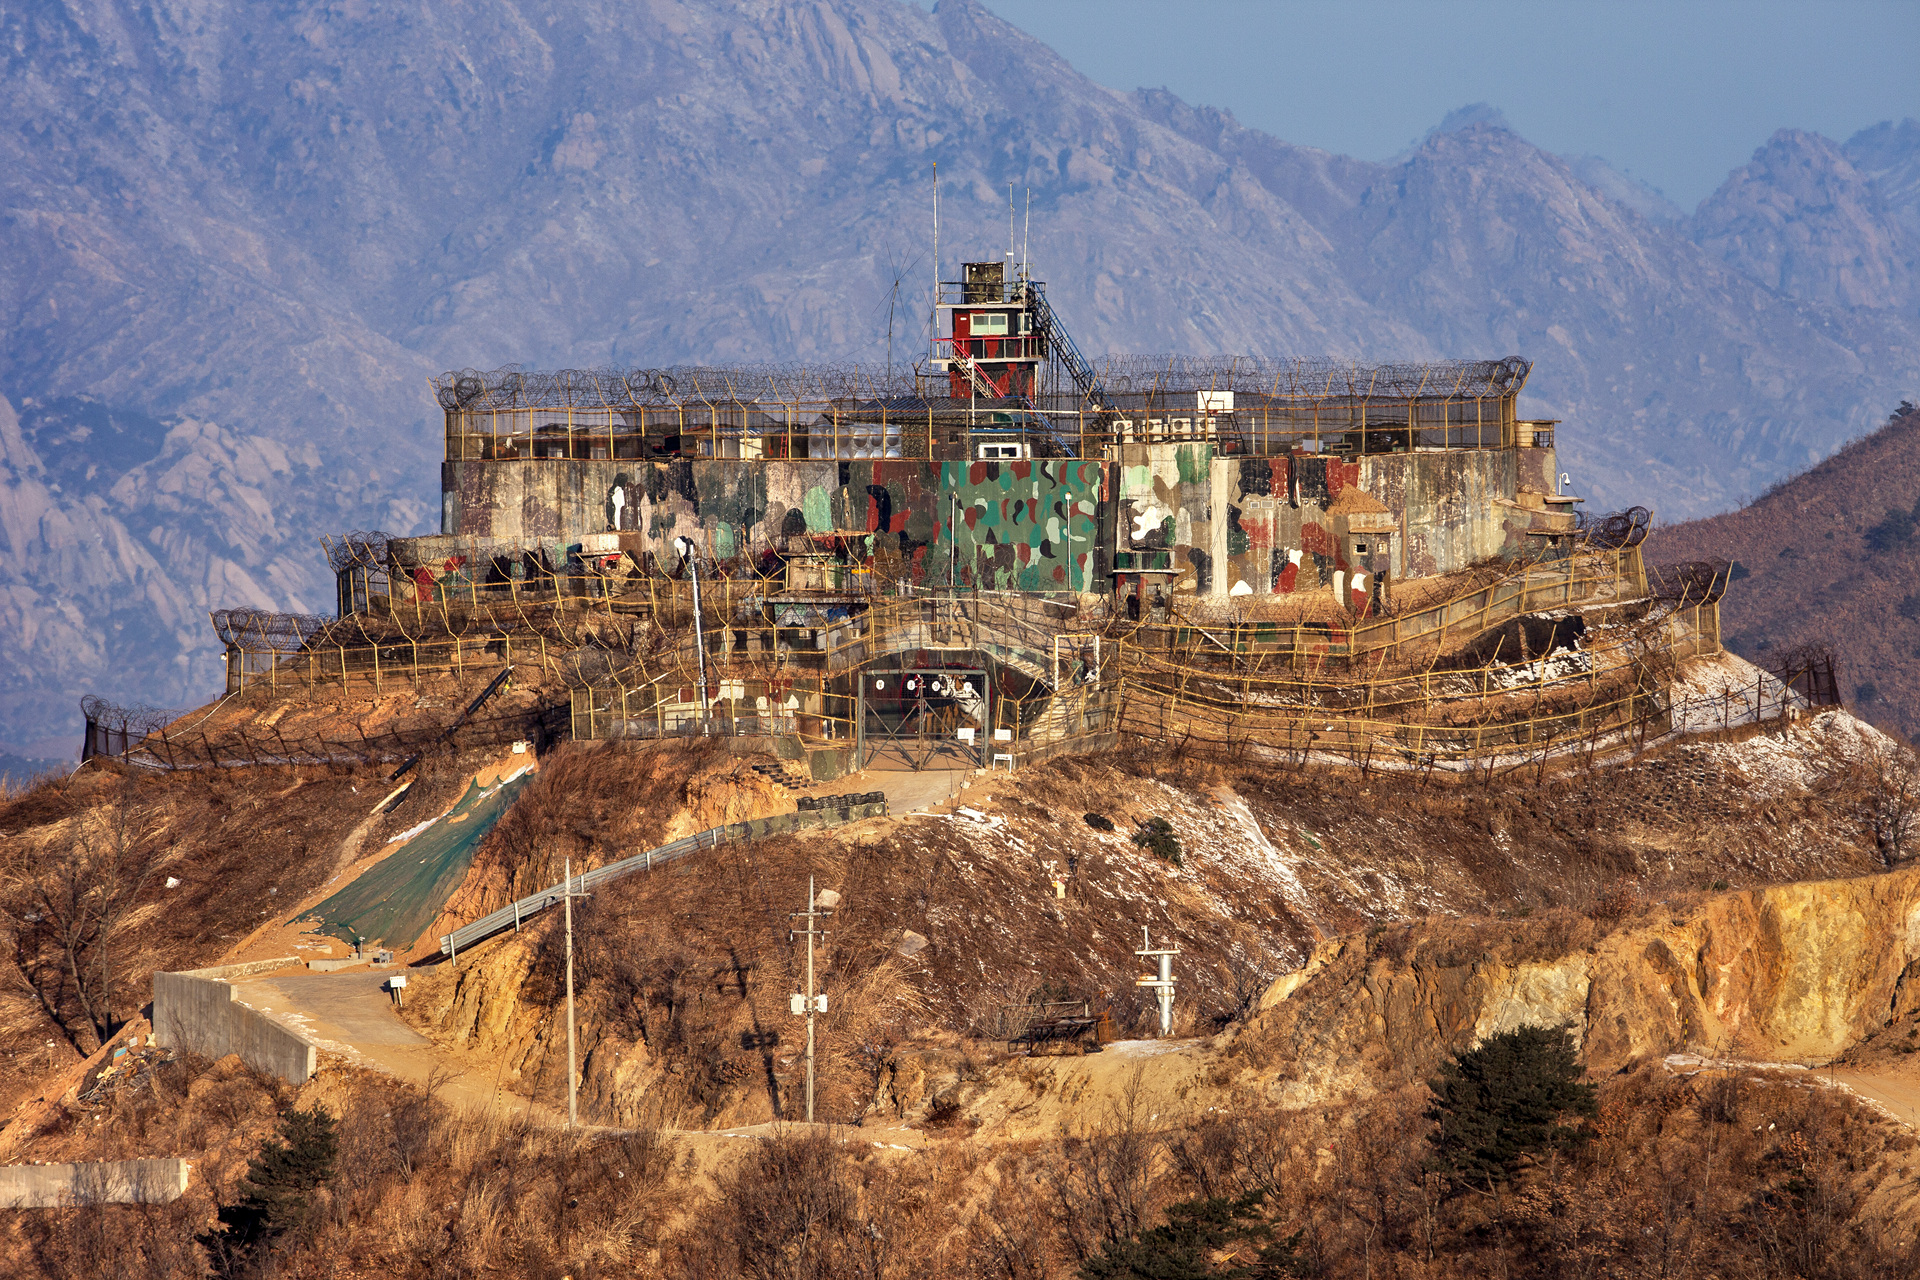 South Korean GP (Guard Post) in front of North Korea's famous Diamond Mountain (Mount Kumgang). South Korean GPs located on top of hills often closely resemble European castles.